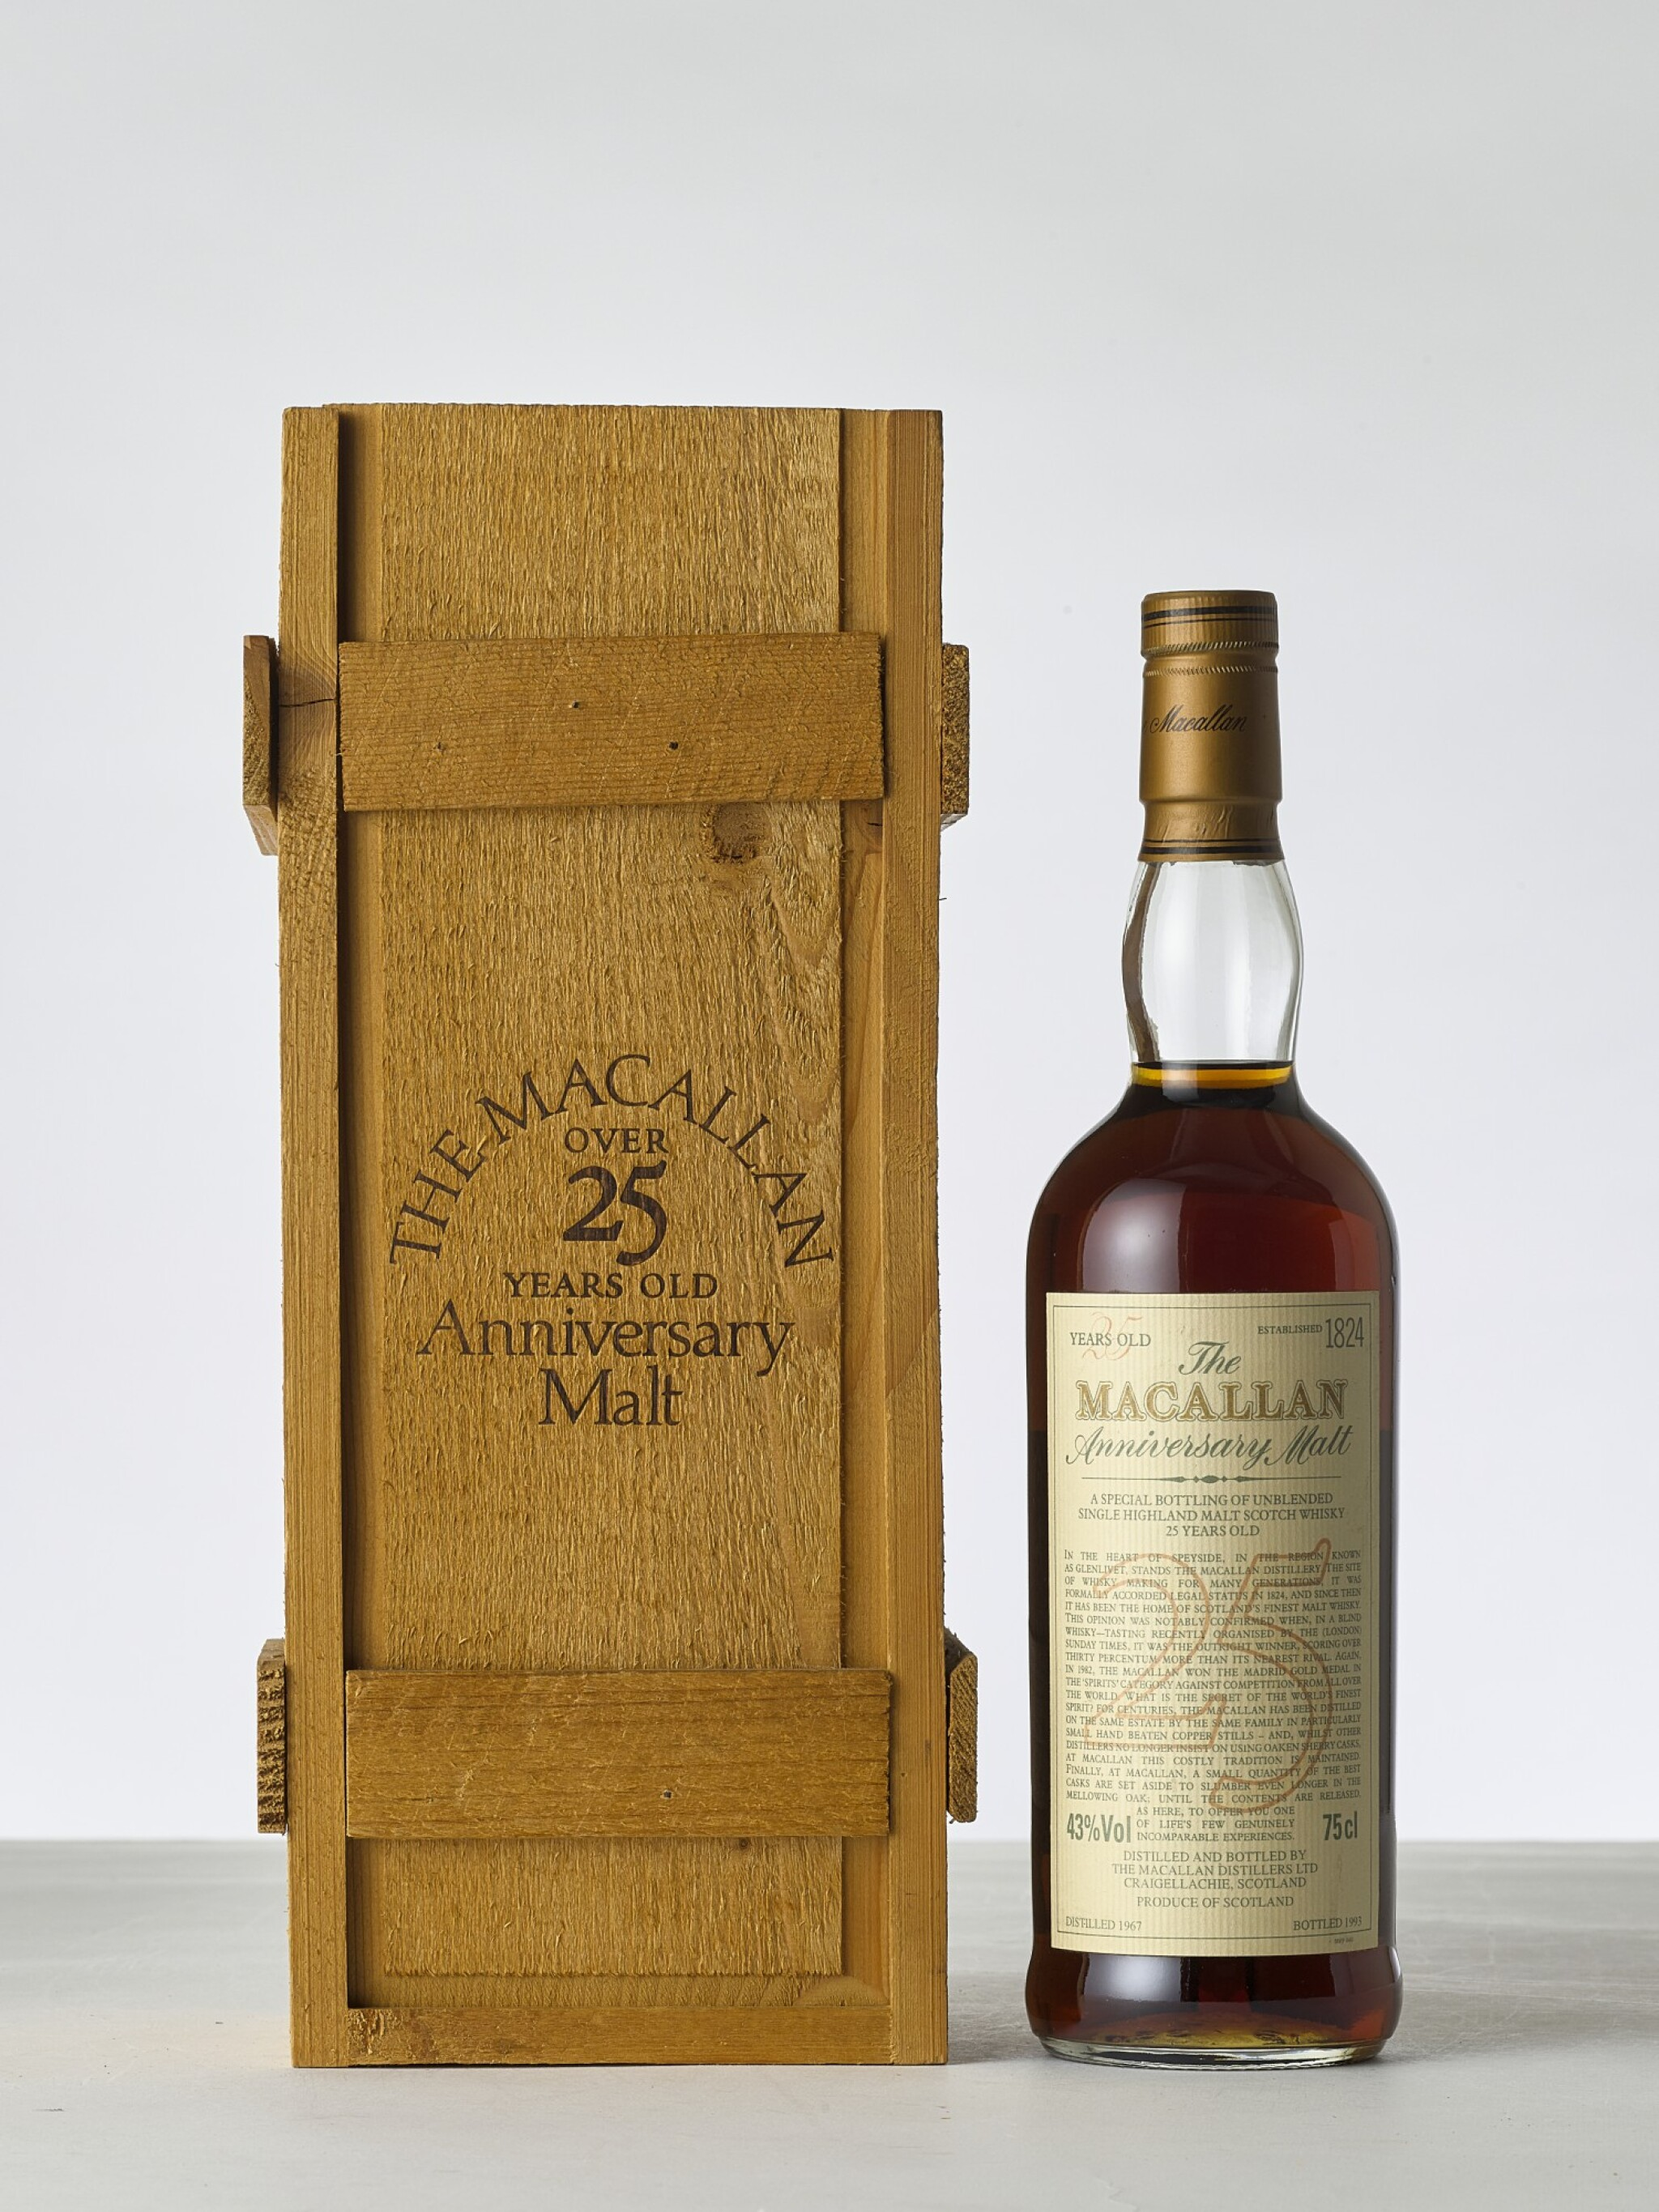 View 1 of Lot 2009. The Macallan 25 Year Old Anniversary Malt 43.0 abv 1967 (1 BT).